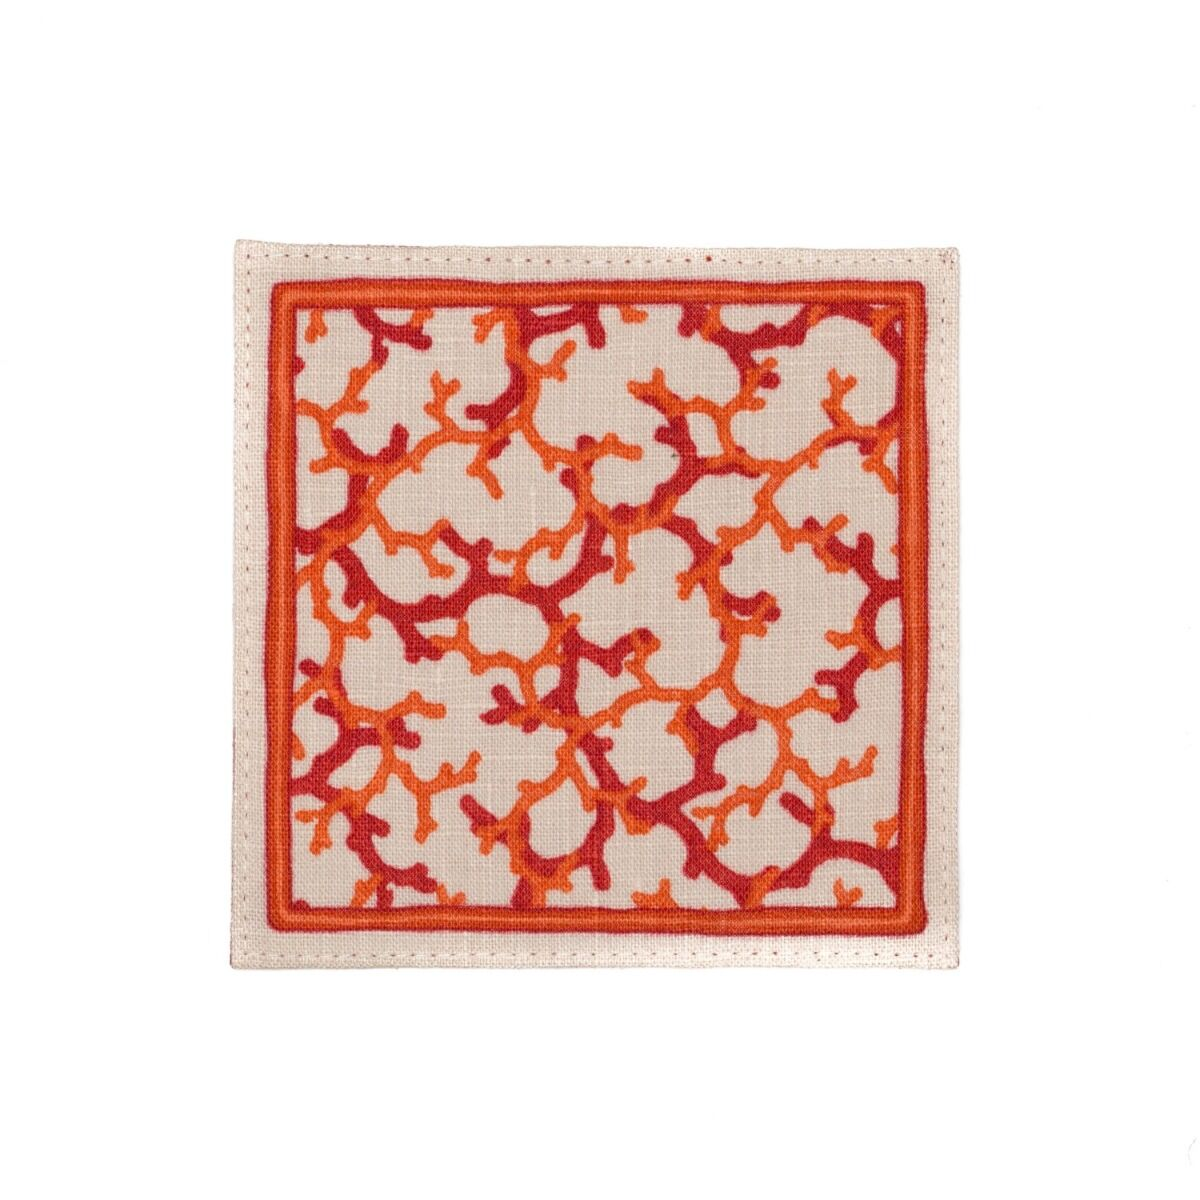 Set of 4 Coral Linen Coasters - Red